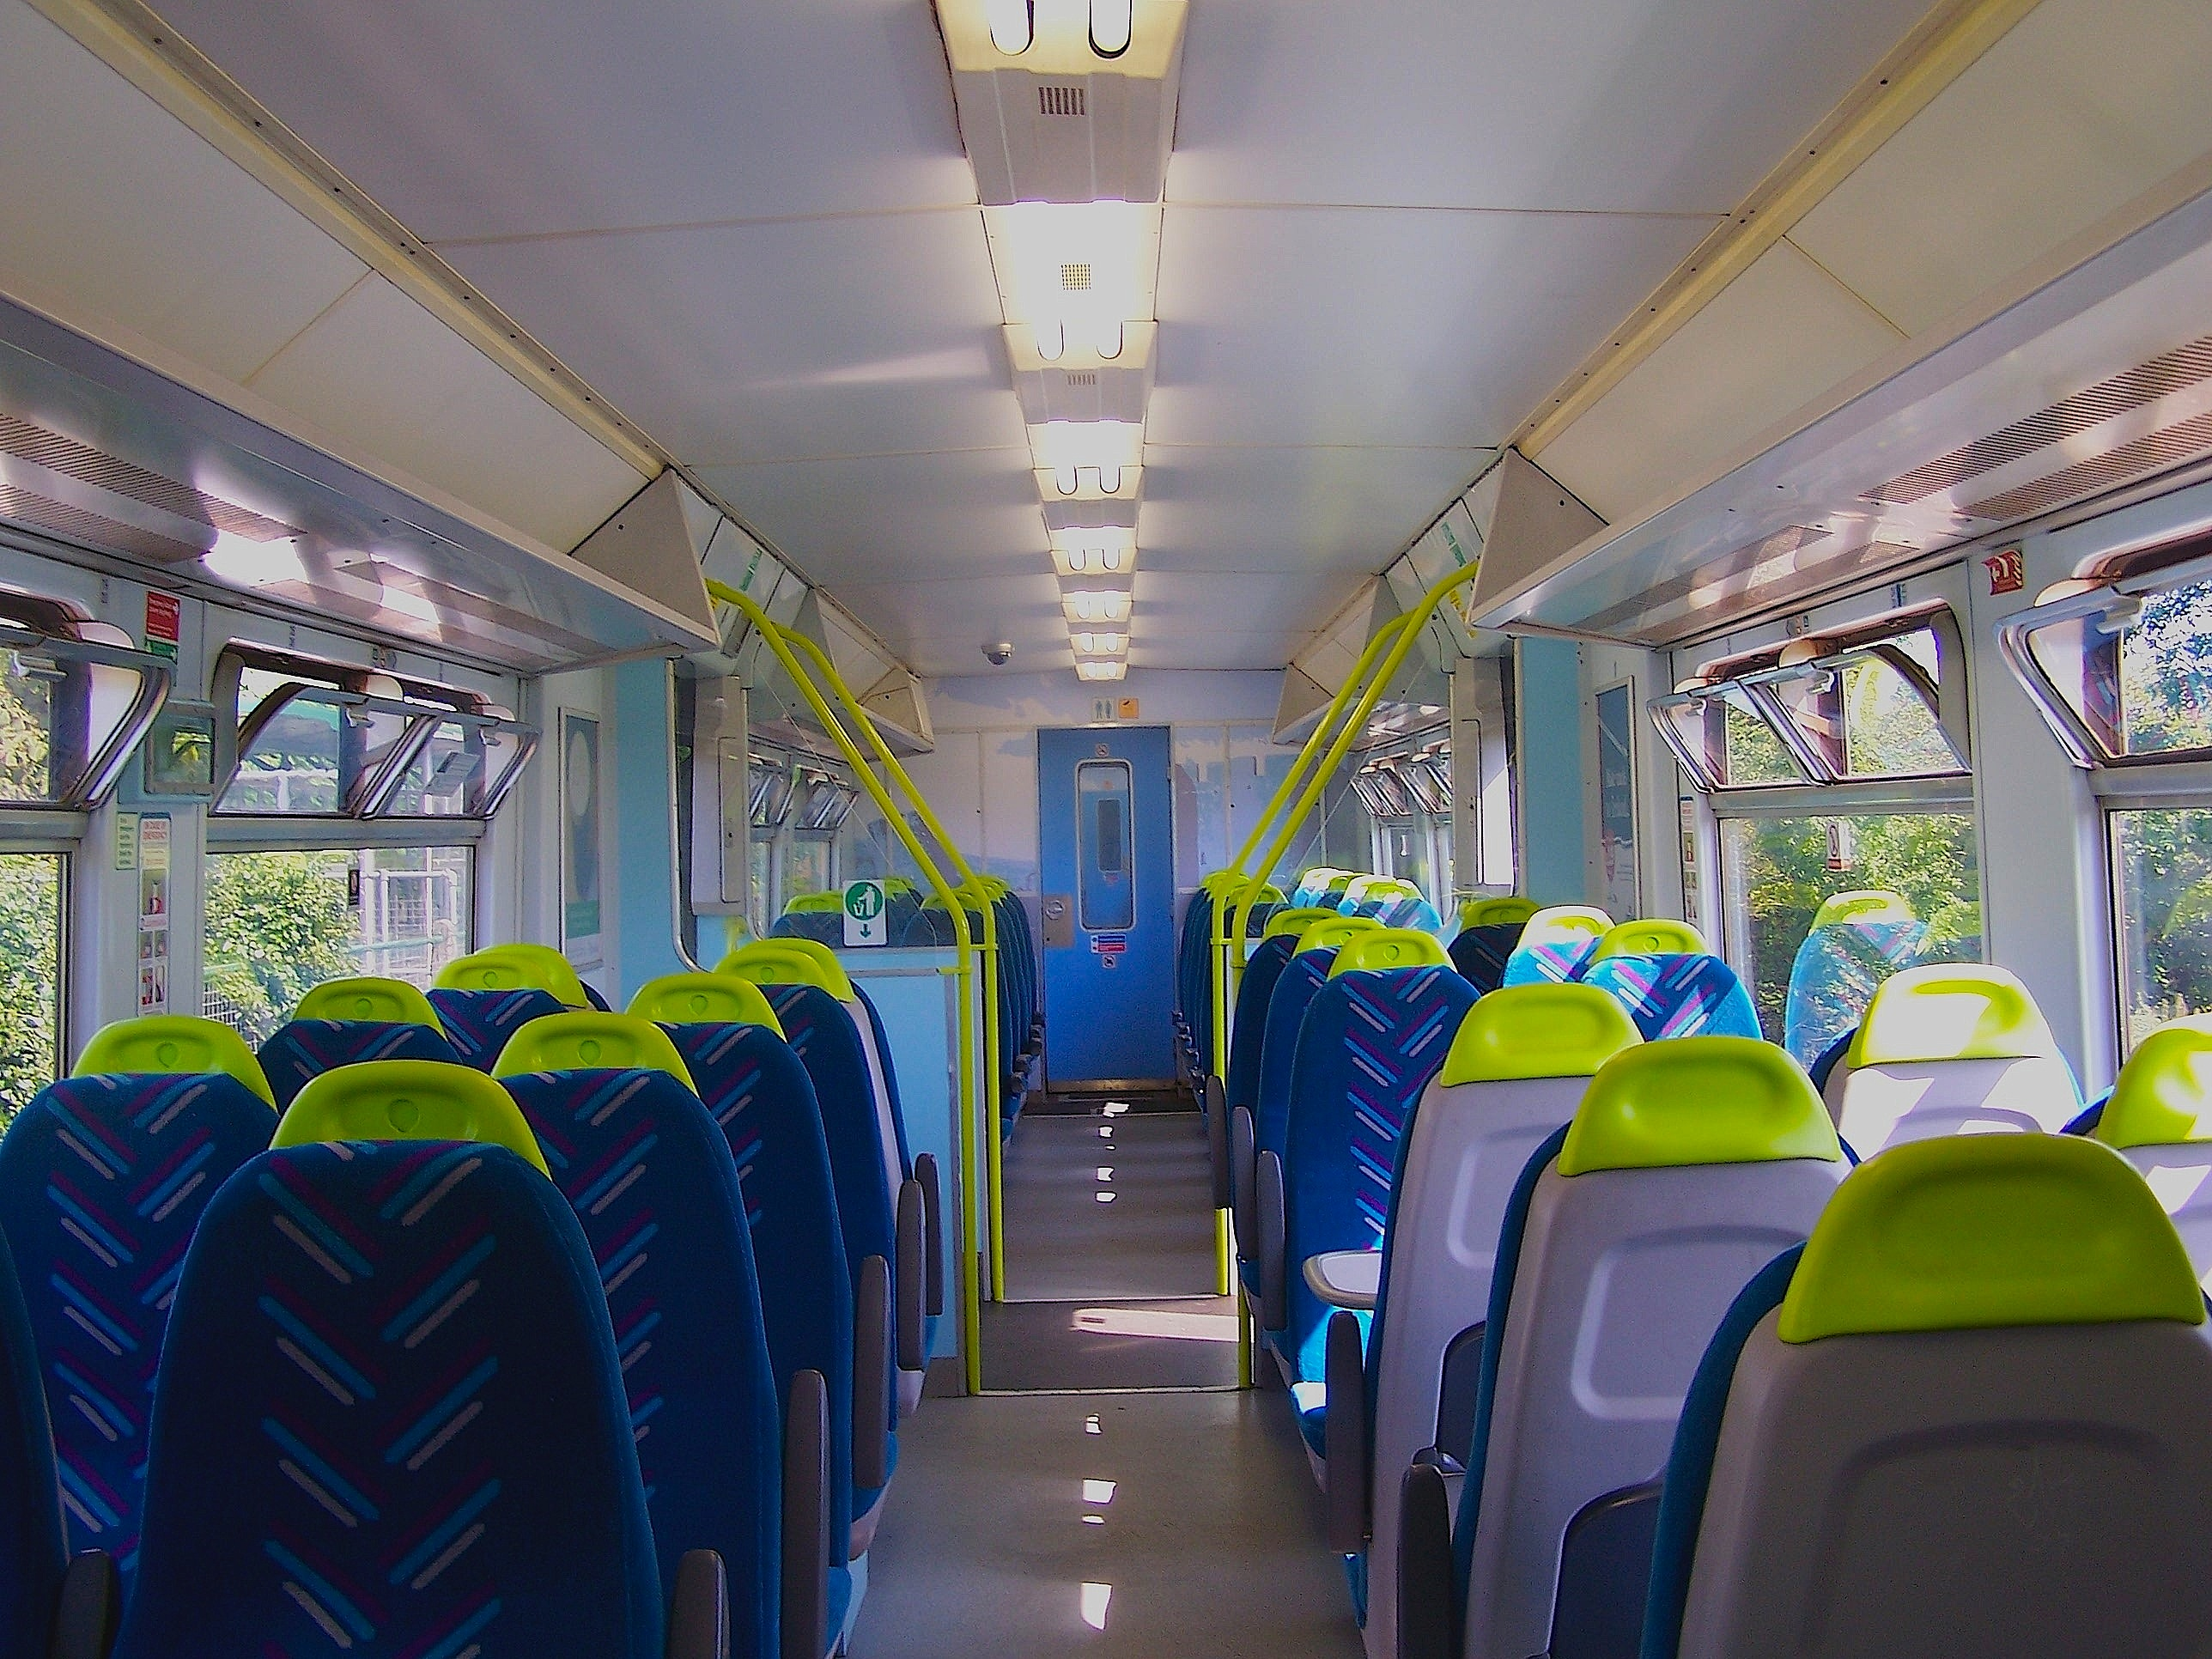 Carriage Cleaning How Clean Is Your Train Clean Hire Cleanhire